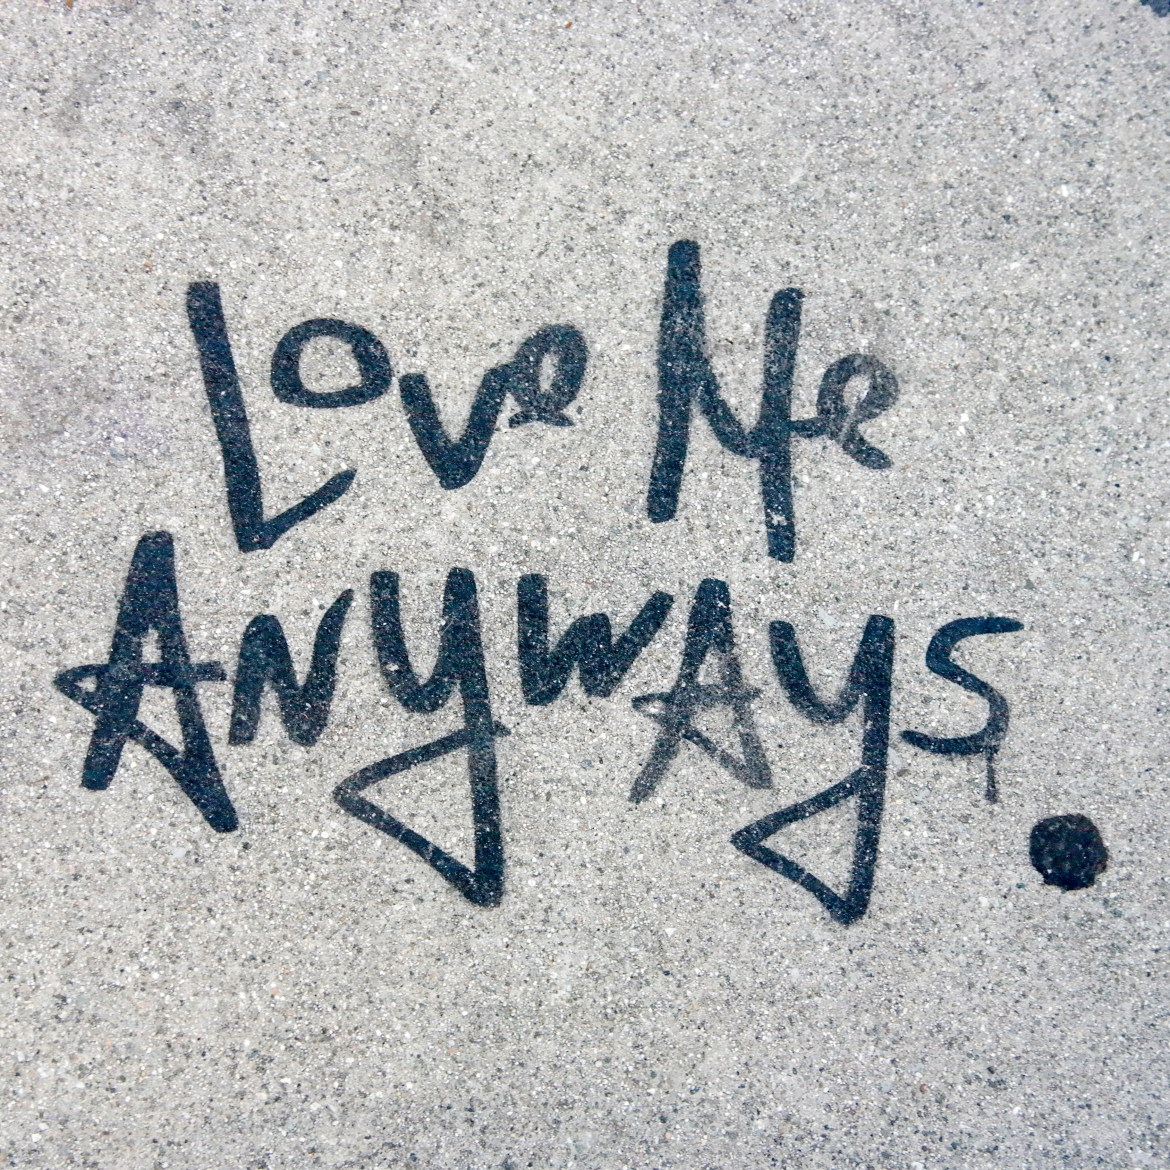 #lovemeanyways